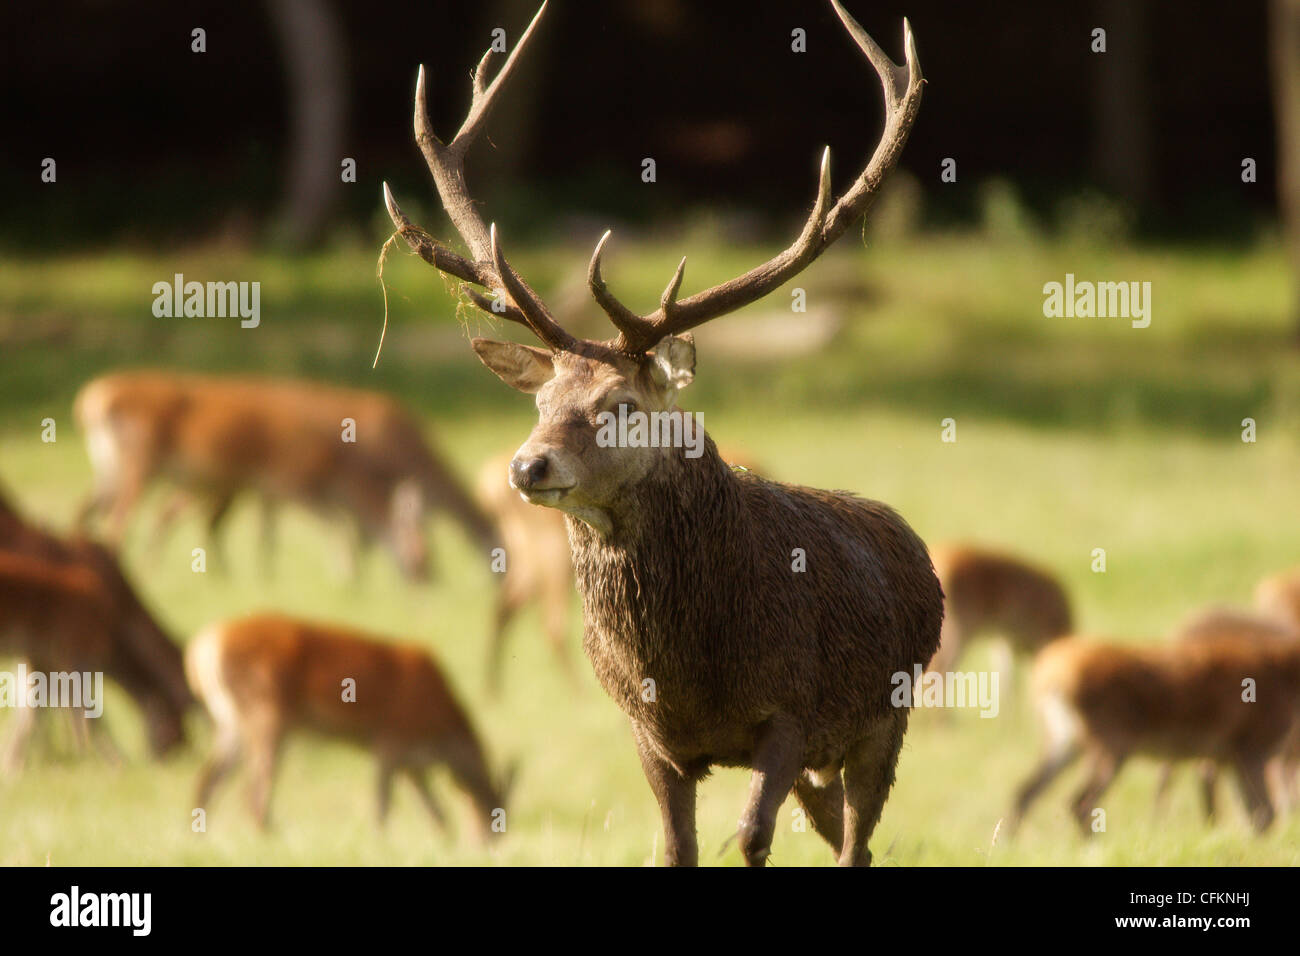 Red Deer Stag Cervus Elaphus - Stock Image